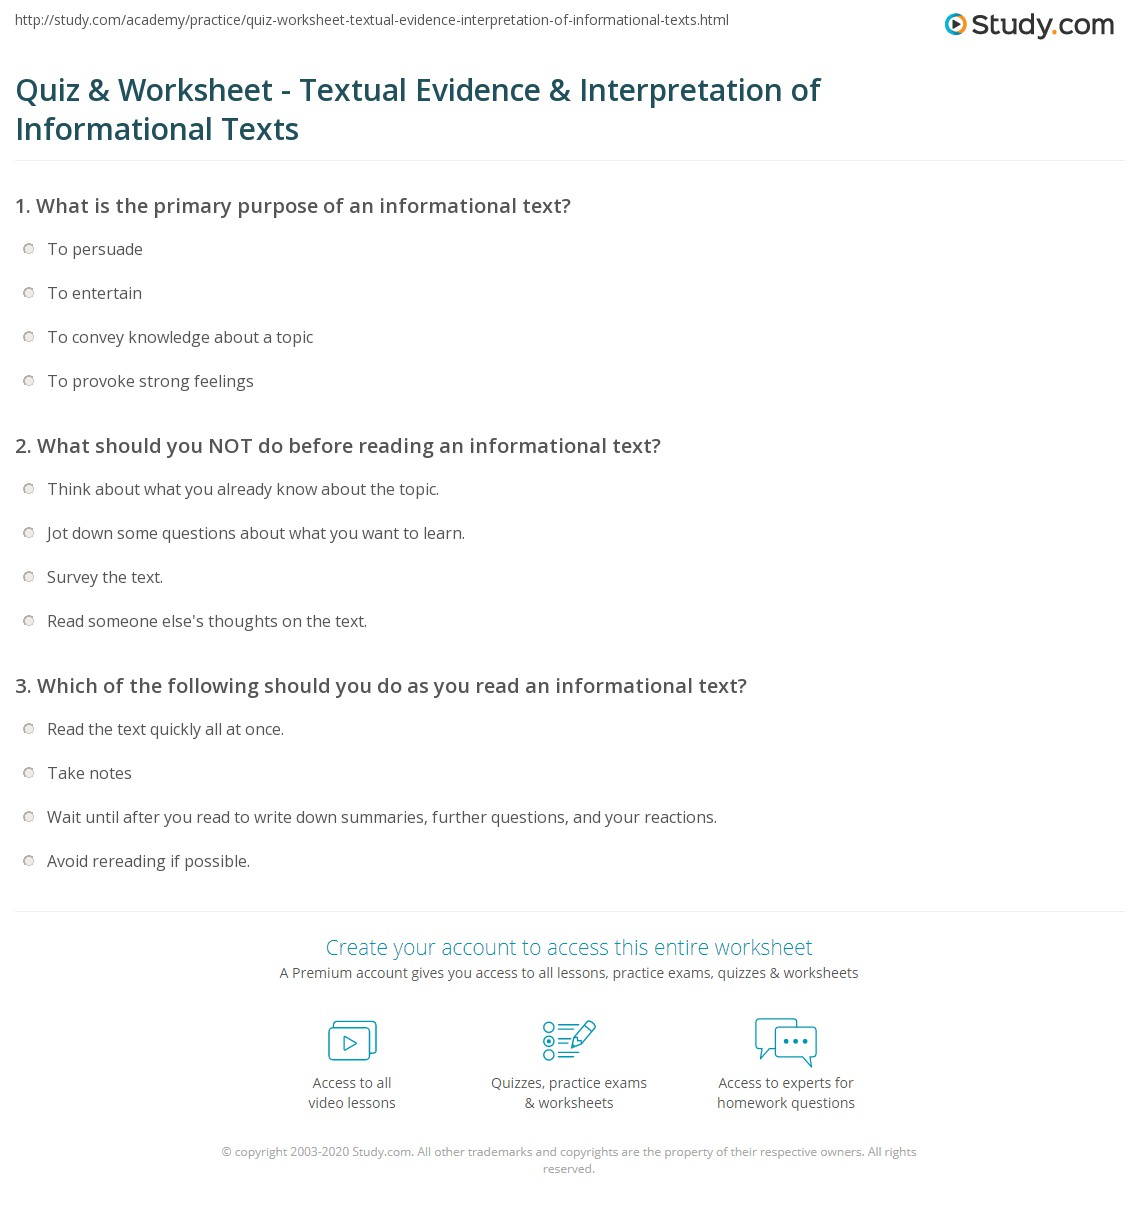 Quiz & Worksheet Textual Evidence & Interpretation of